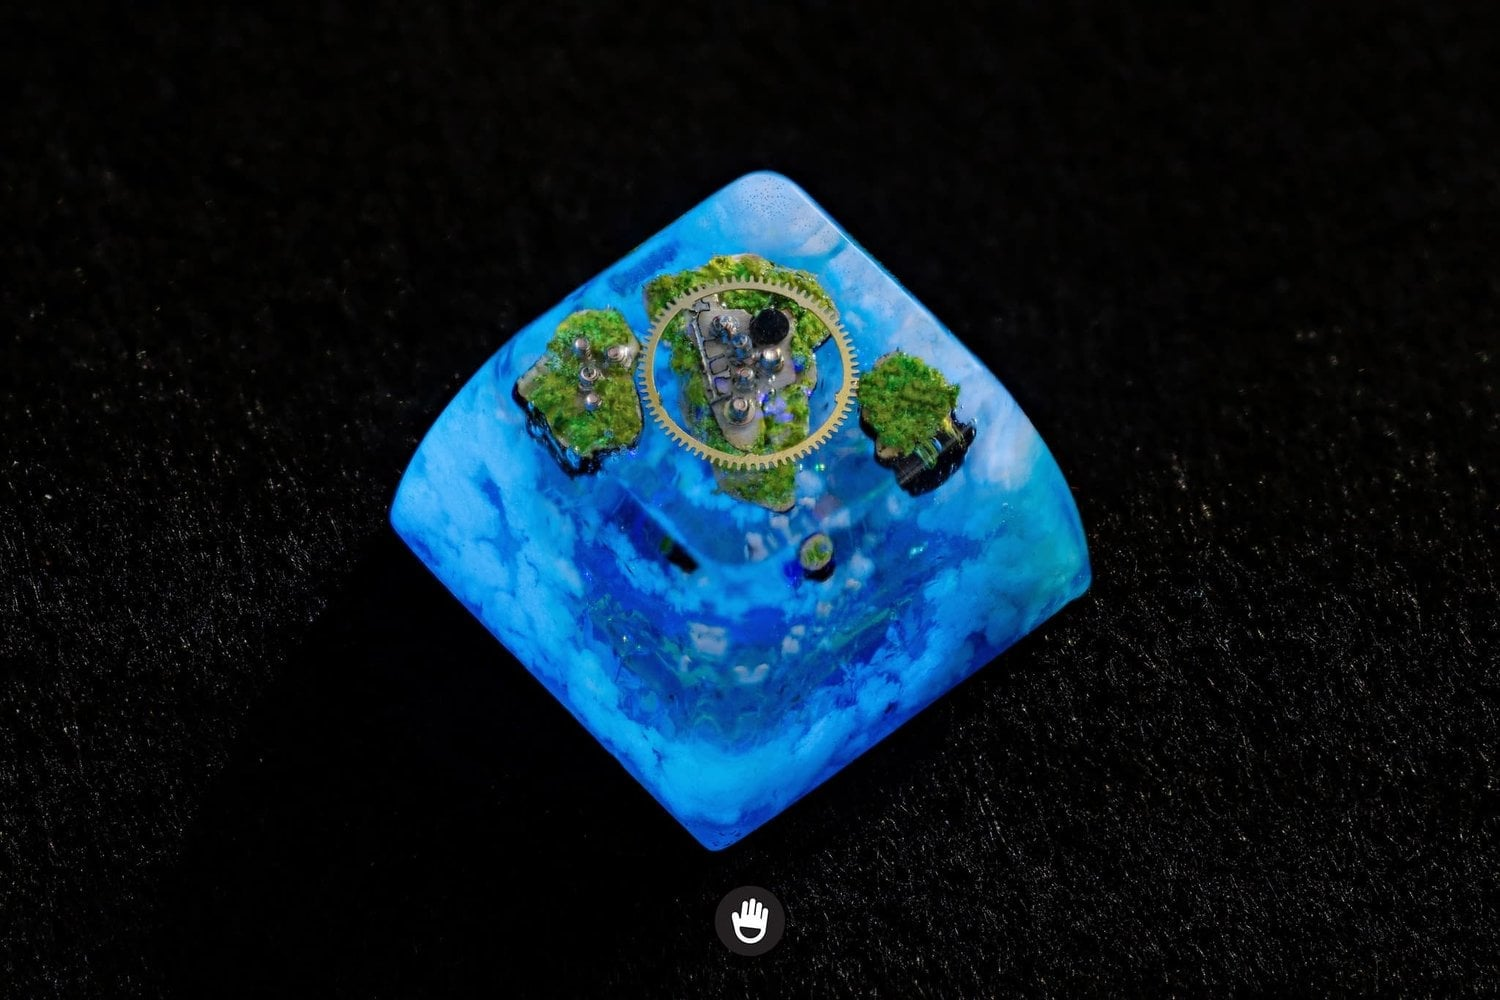 Wood Mini Iceland Artisan Keycaps Key Cap For Cherry Mx Mechanical Keyboard Selling Well All Over The World Sa Natural Landscape Handmade Keycap Resin Keyboards